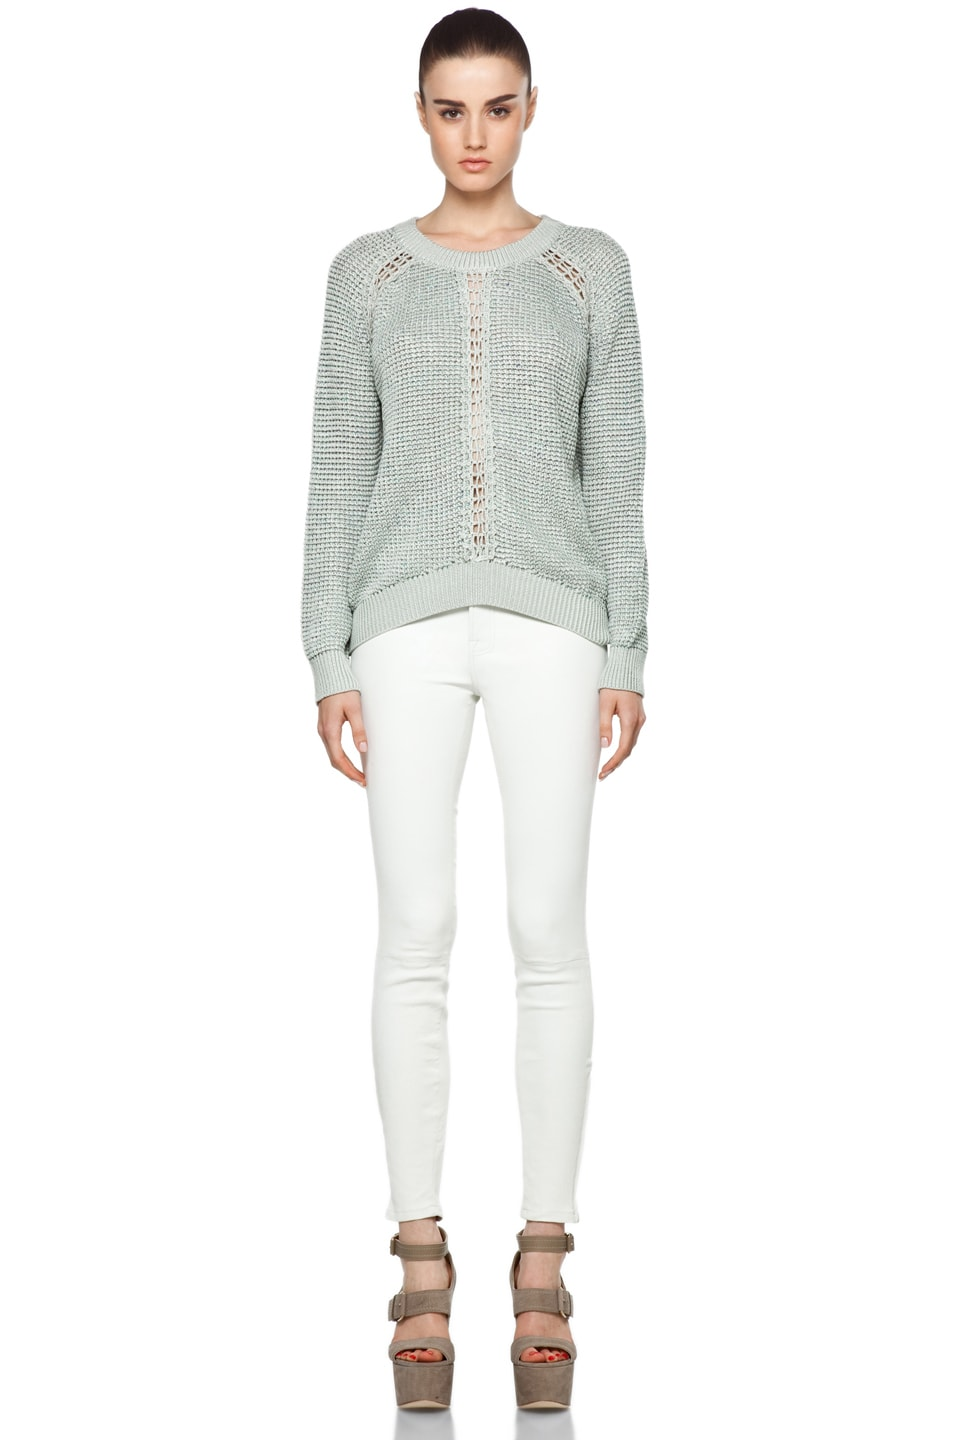 Image 5 of Theyskens' Theory Yigly Kyrt Sweater in Mint Green